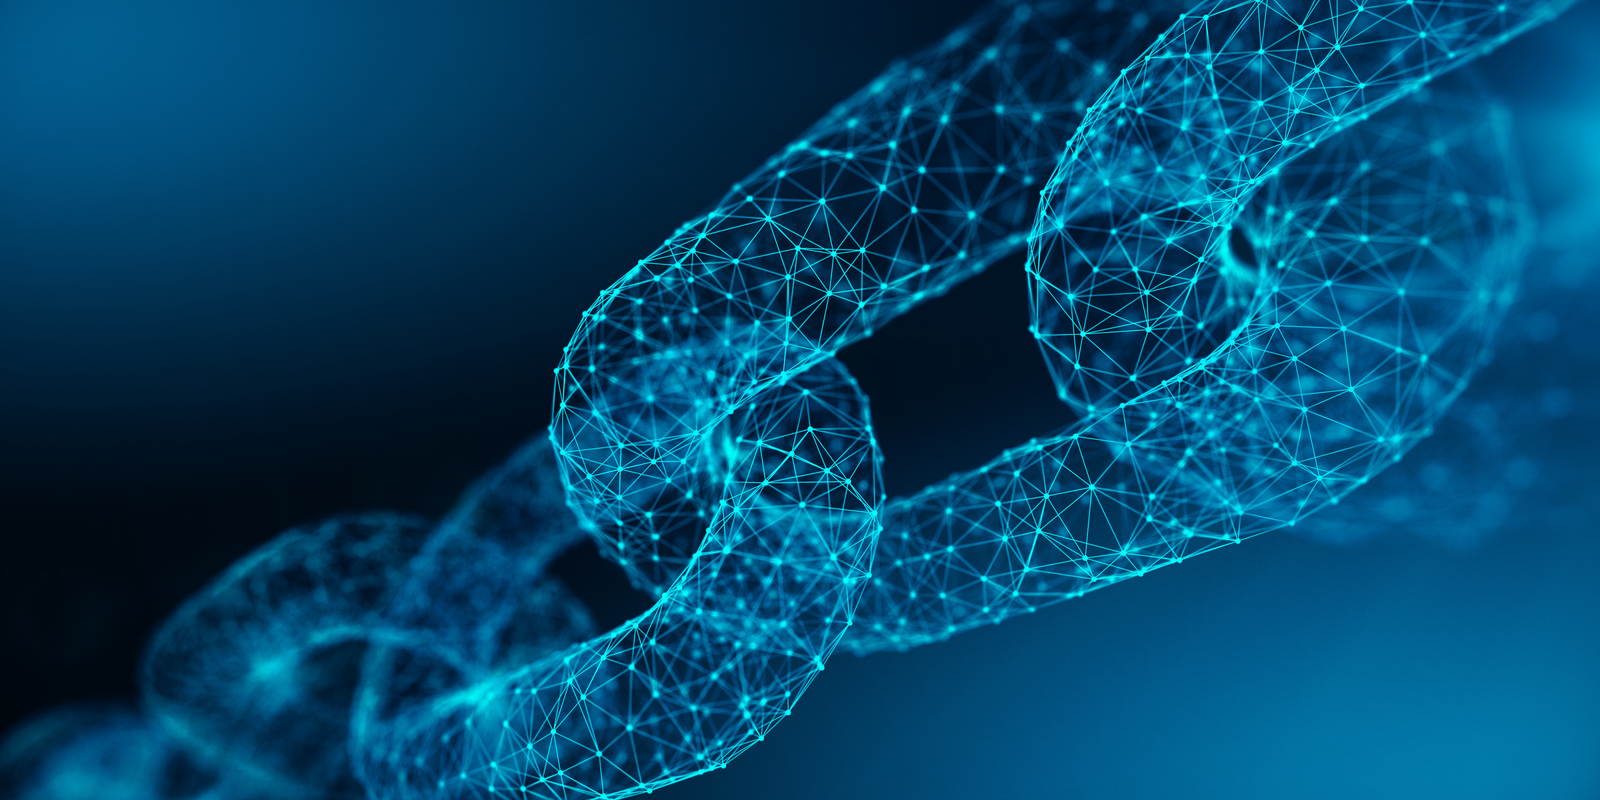 The Hype Has Faded But Demand Remains for Enterprise Blockchains